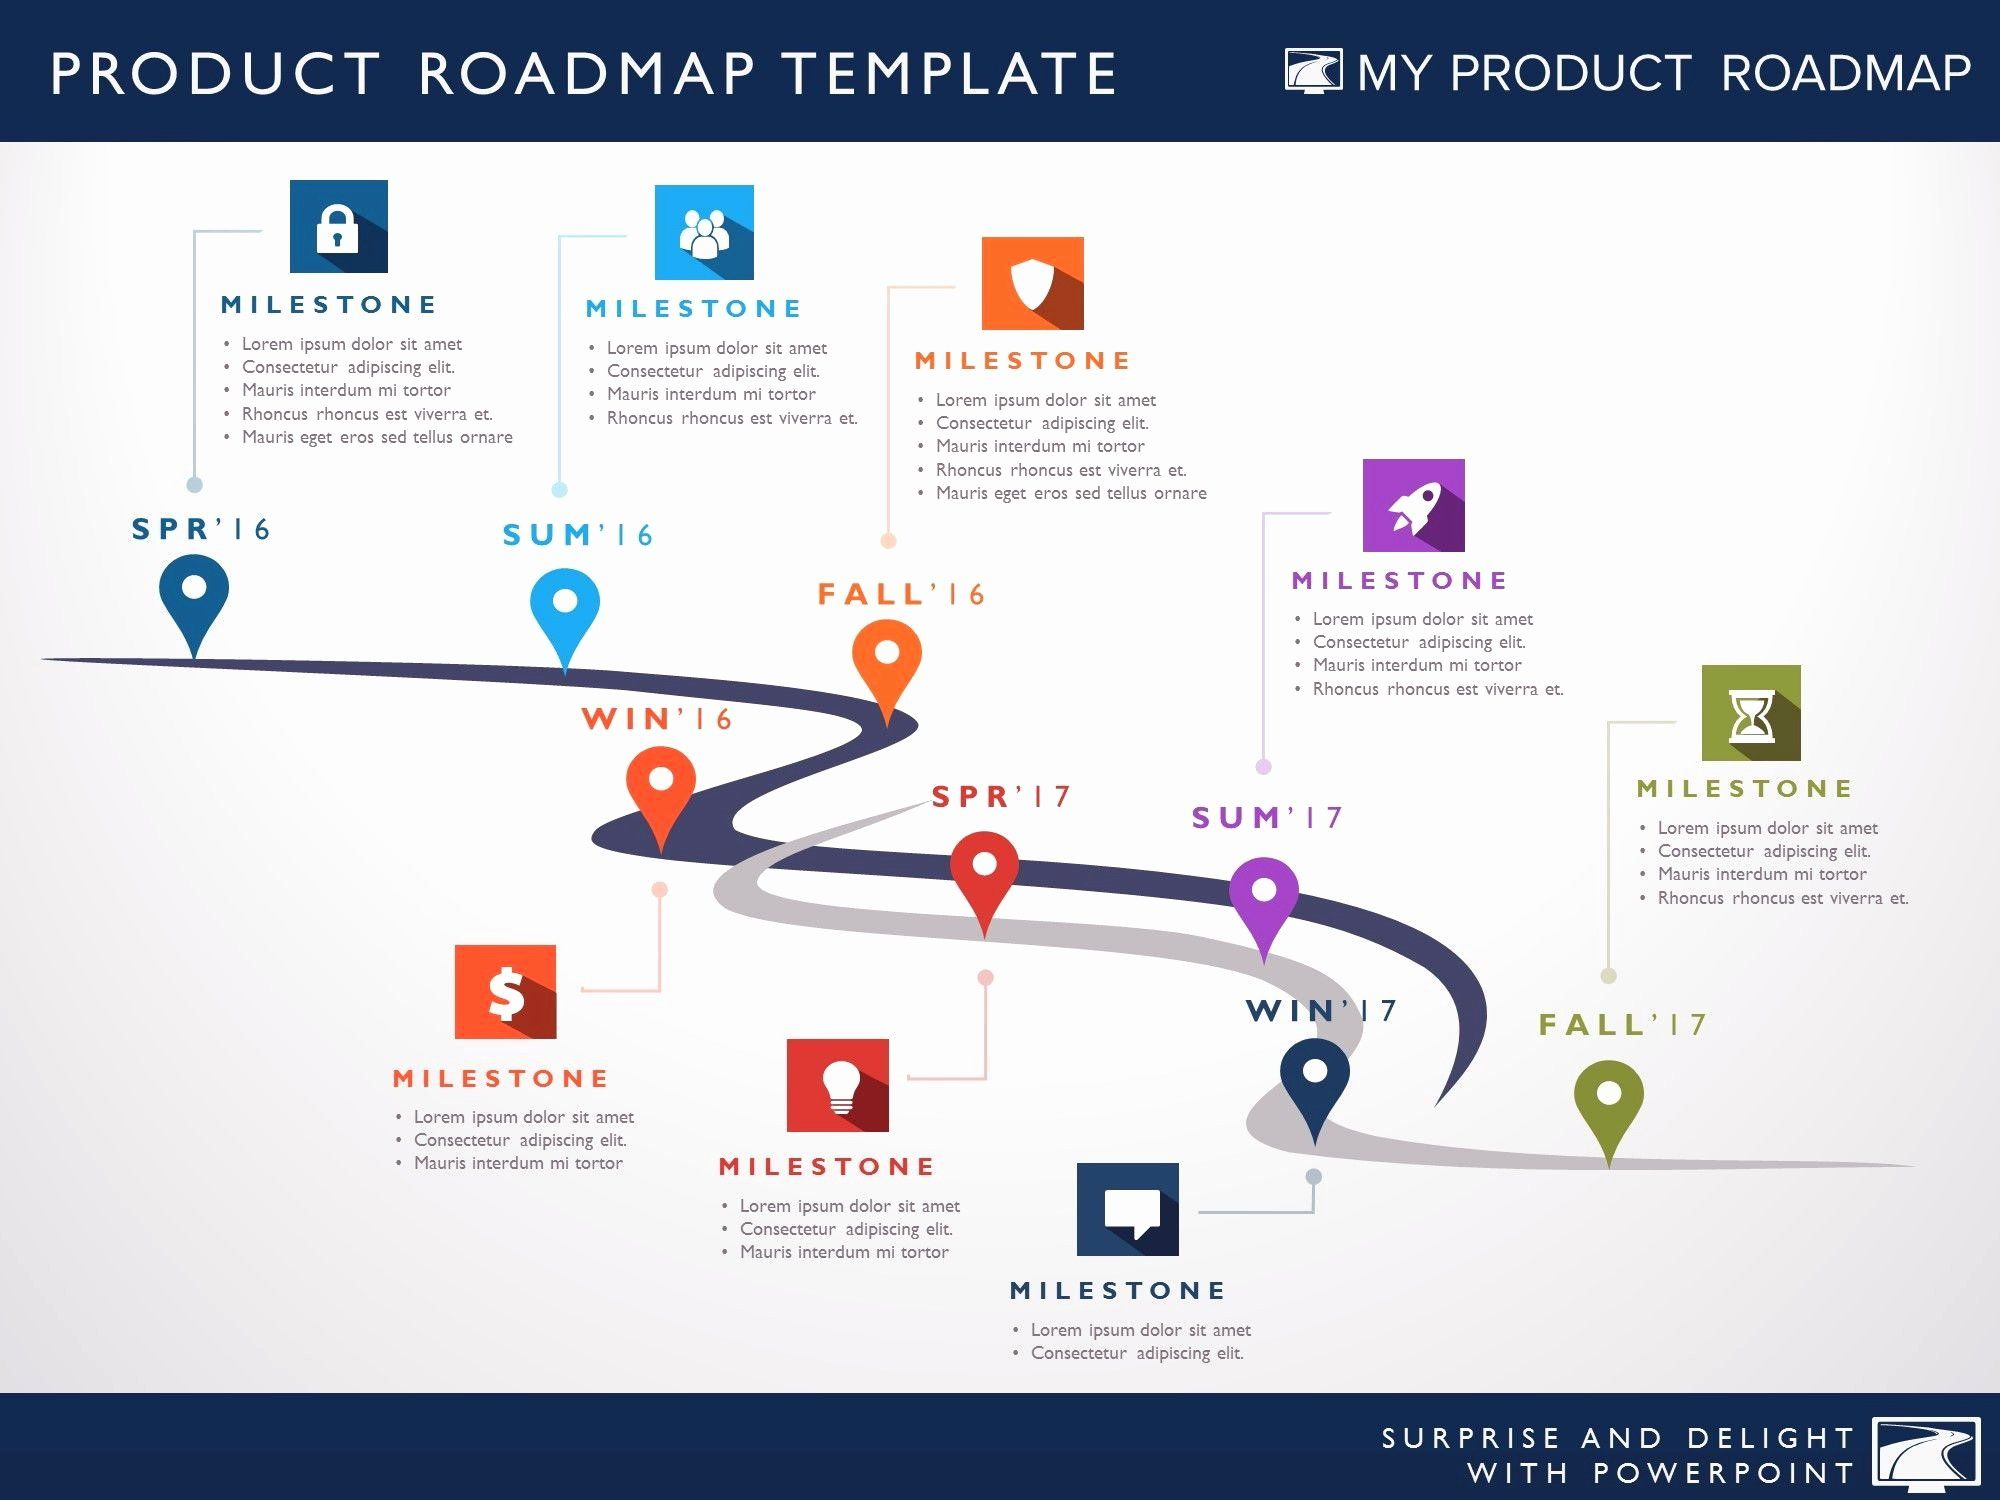 Powerpoint Roadmap Template Free Download Unique Product